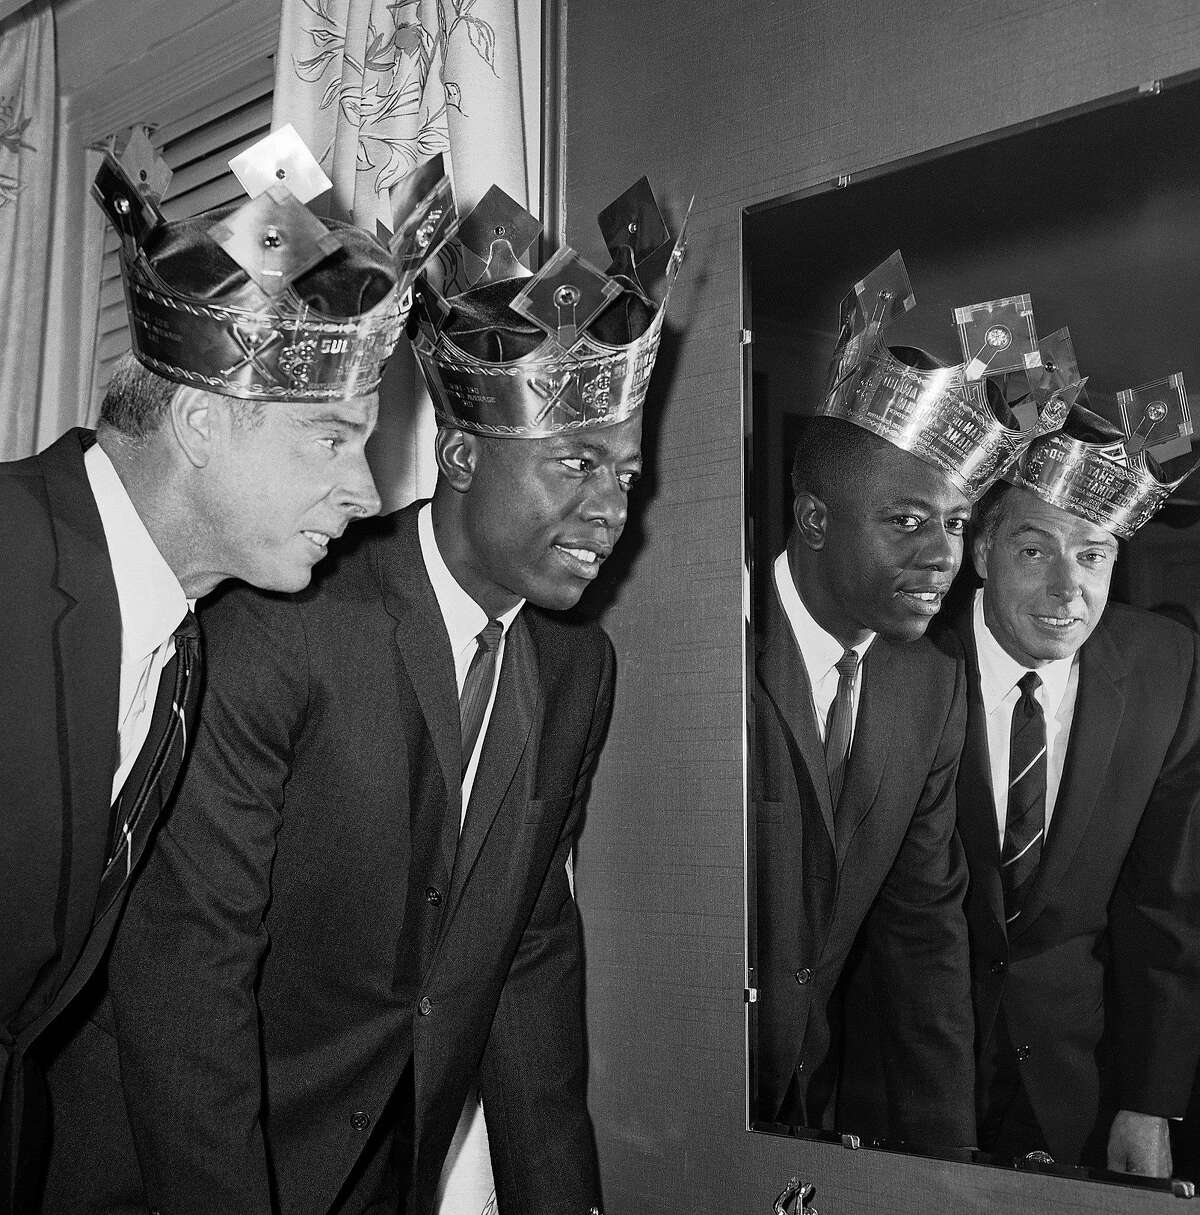 """Scott Ostler says Hank Aaron was his generation's Joe DiMaggio. They are shown wearing """"Sultan of Swat"""" crowns in 1964. Vin Scully, however, called Aaron """"Bad Henry."""""""